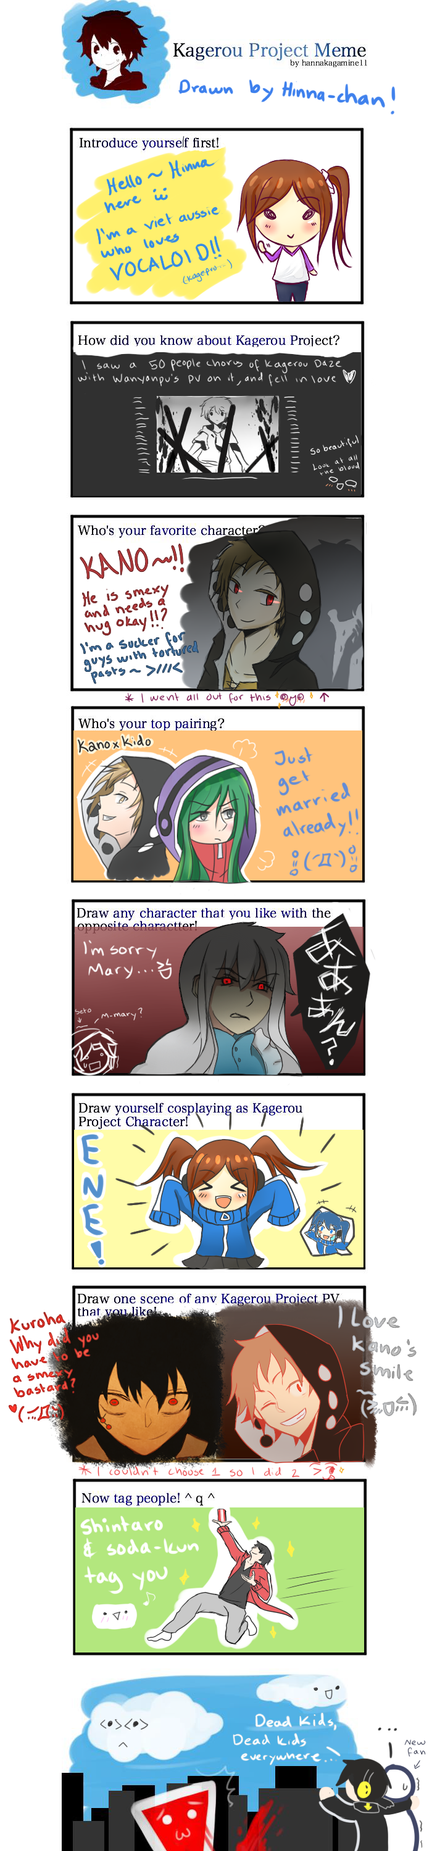 Kagerou Project meme by Hinna-chan